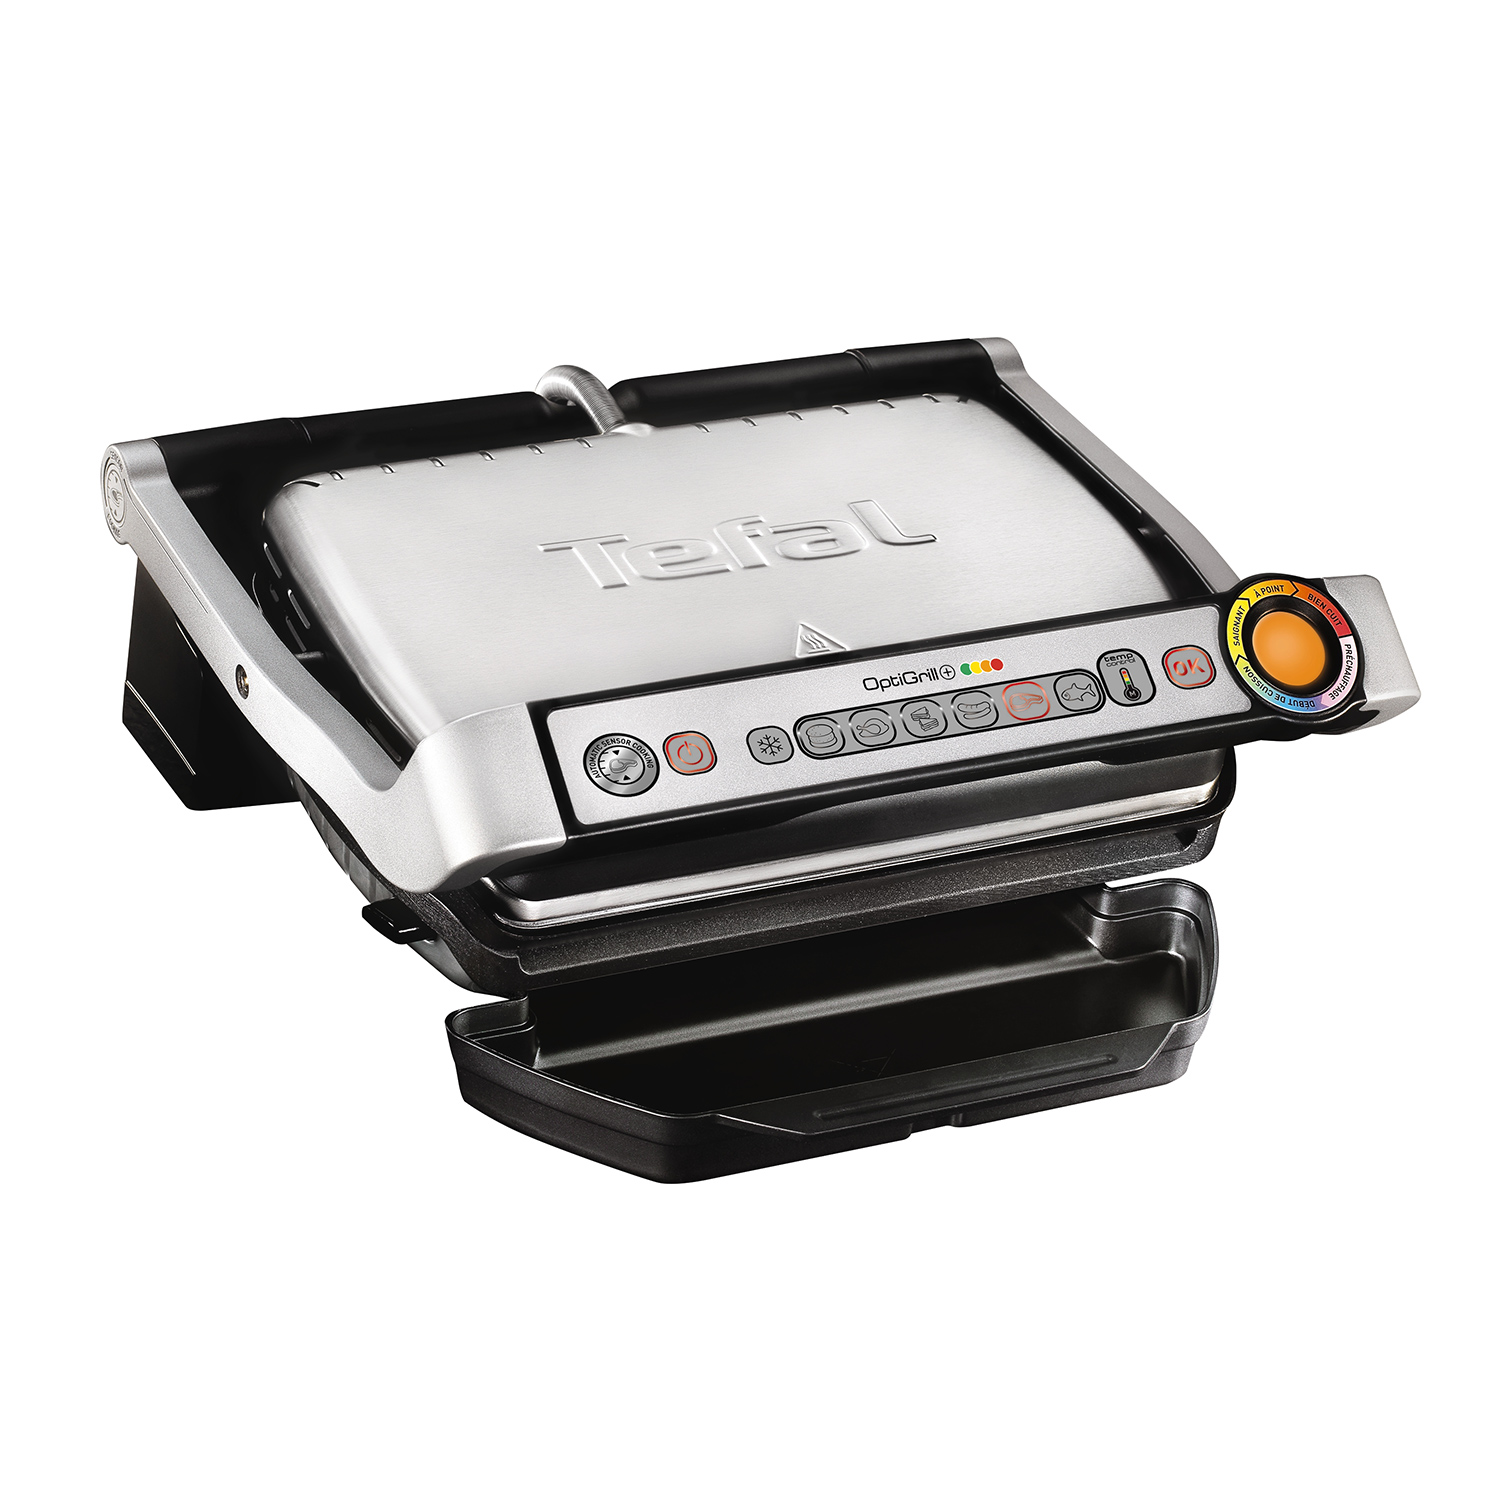 tefal gc712d optigrill kontaktgrill ebay. Black Bedroom Furniture Sets. Home Design Ideas